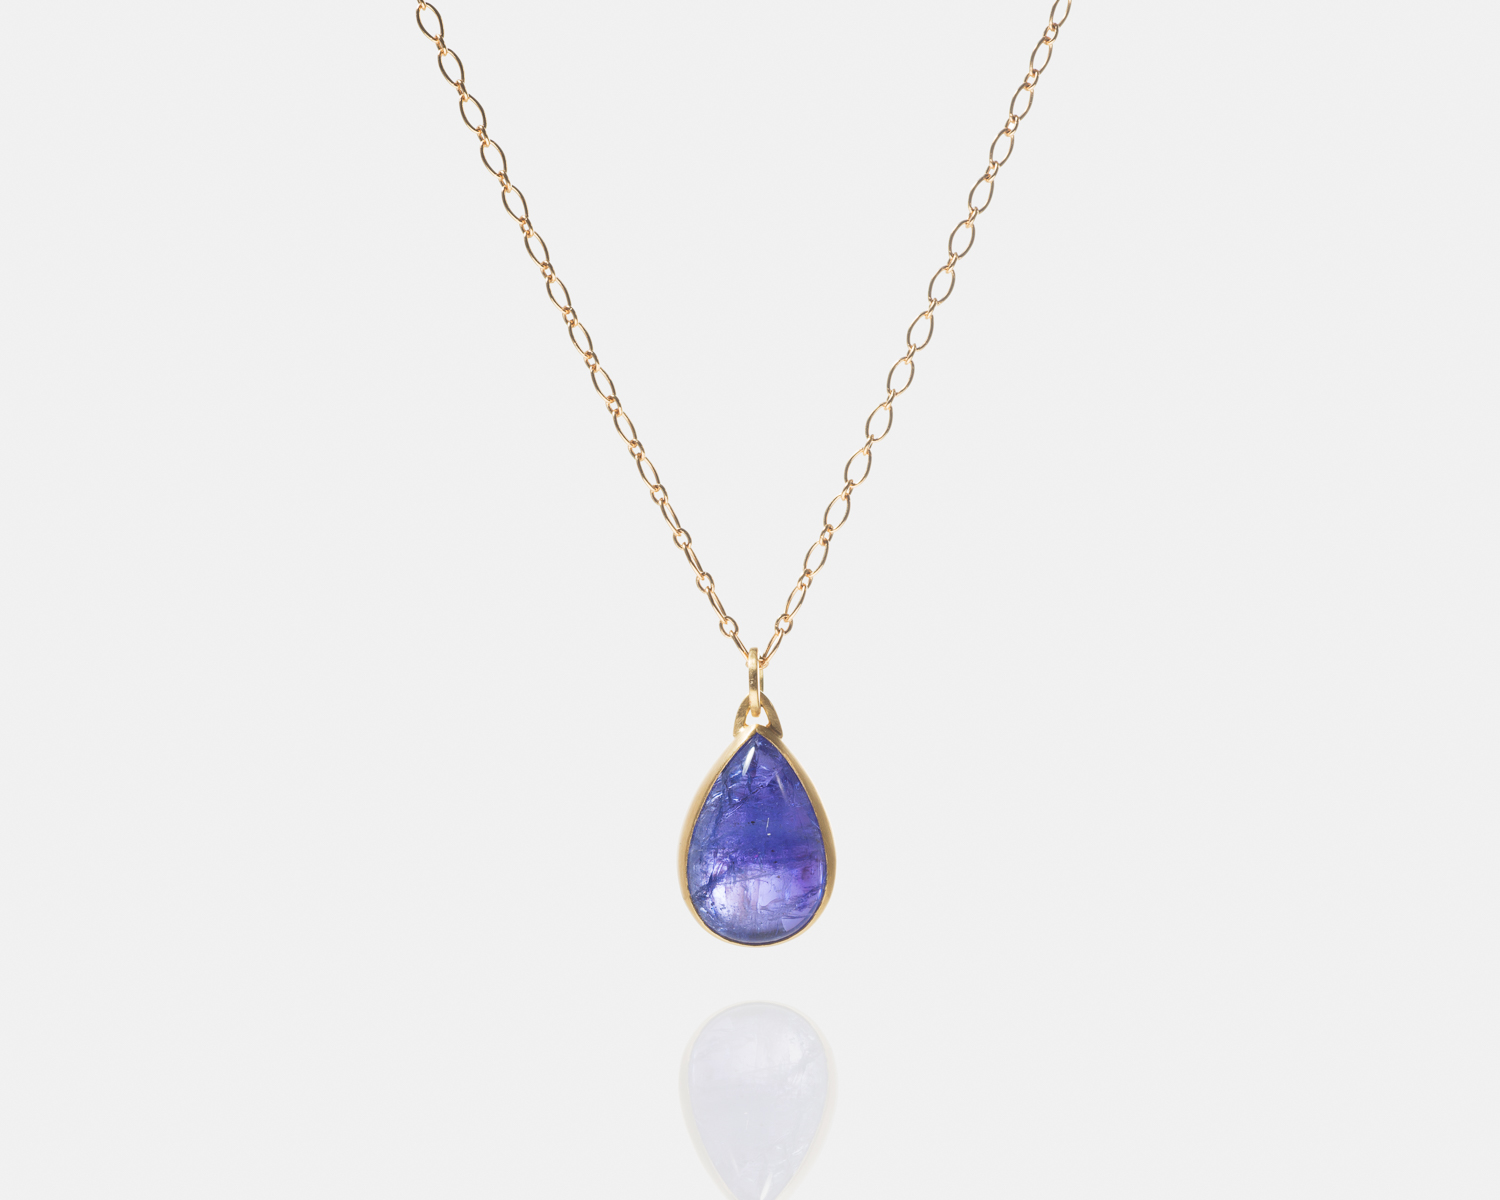 tanzanite pendant bicolor designs product necklace jewelry h